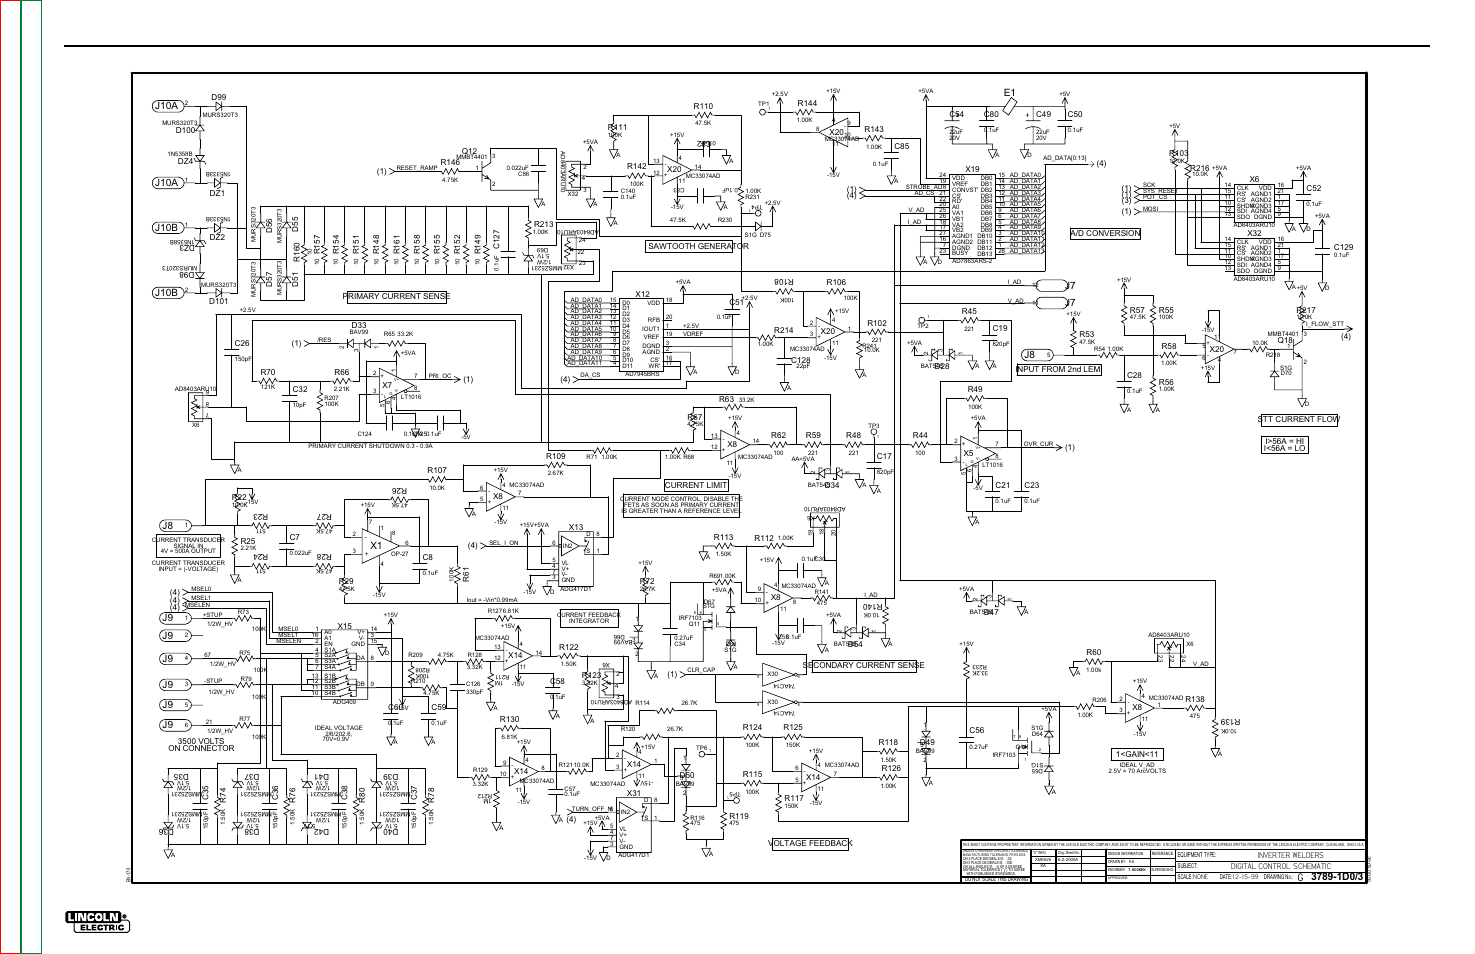 110 Volt Schematic Wiring Electrical Diagrams Schematic Control Pc Board 3 V350